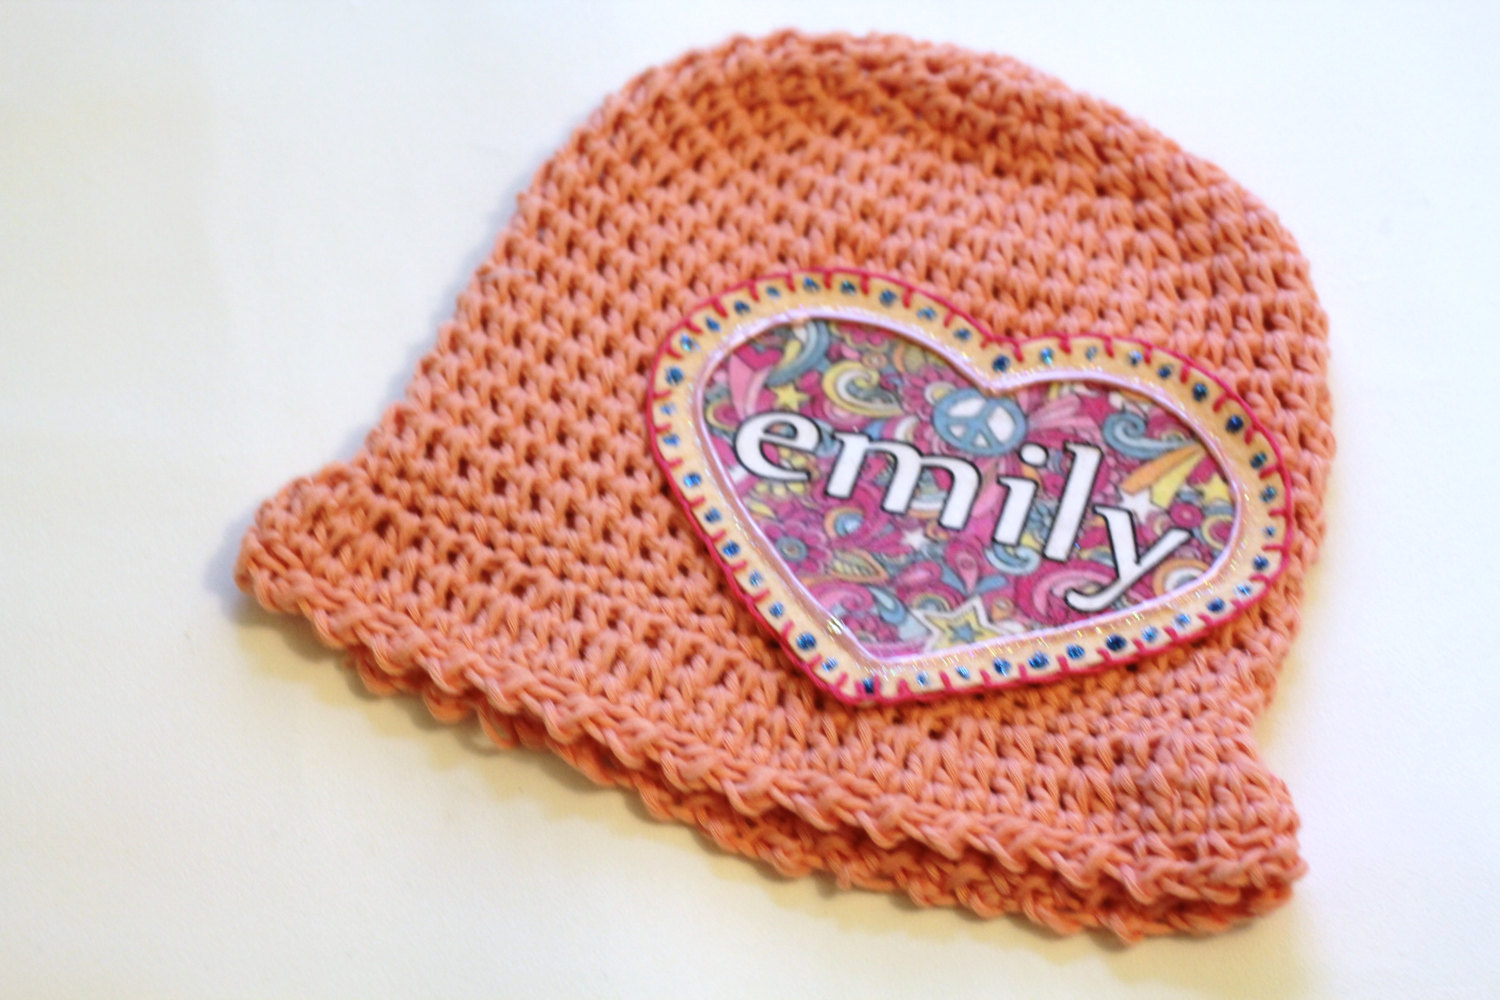 b1e62628d Personalized Baby Beanie, 100% Organic Cotton Hand Crochet With Pink Floral  Heart Personalized Name Applique